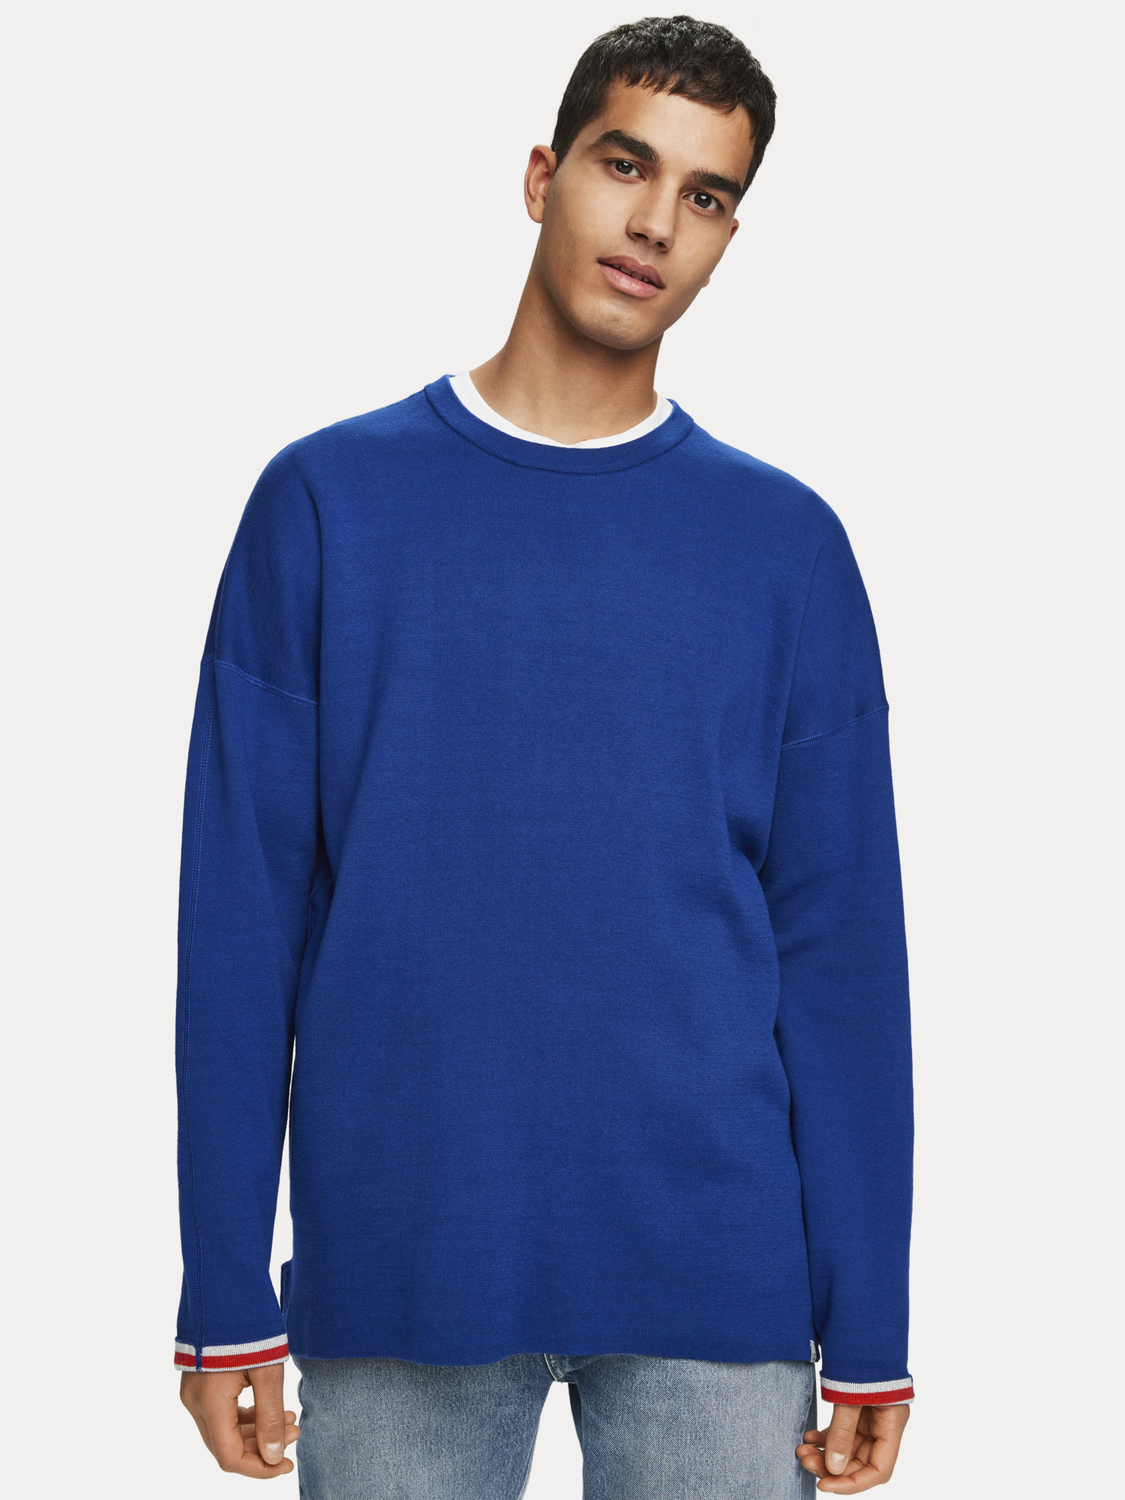 Homme Pull réversible